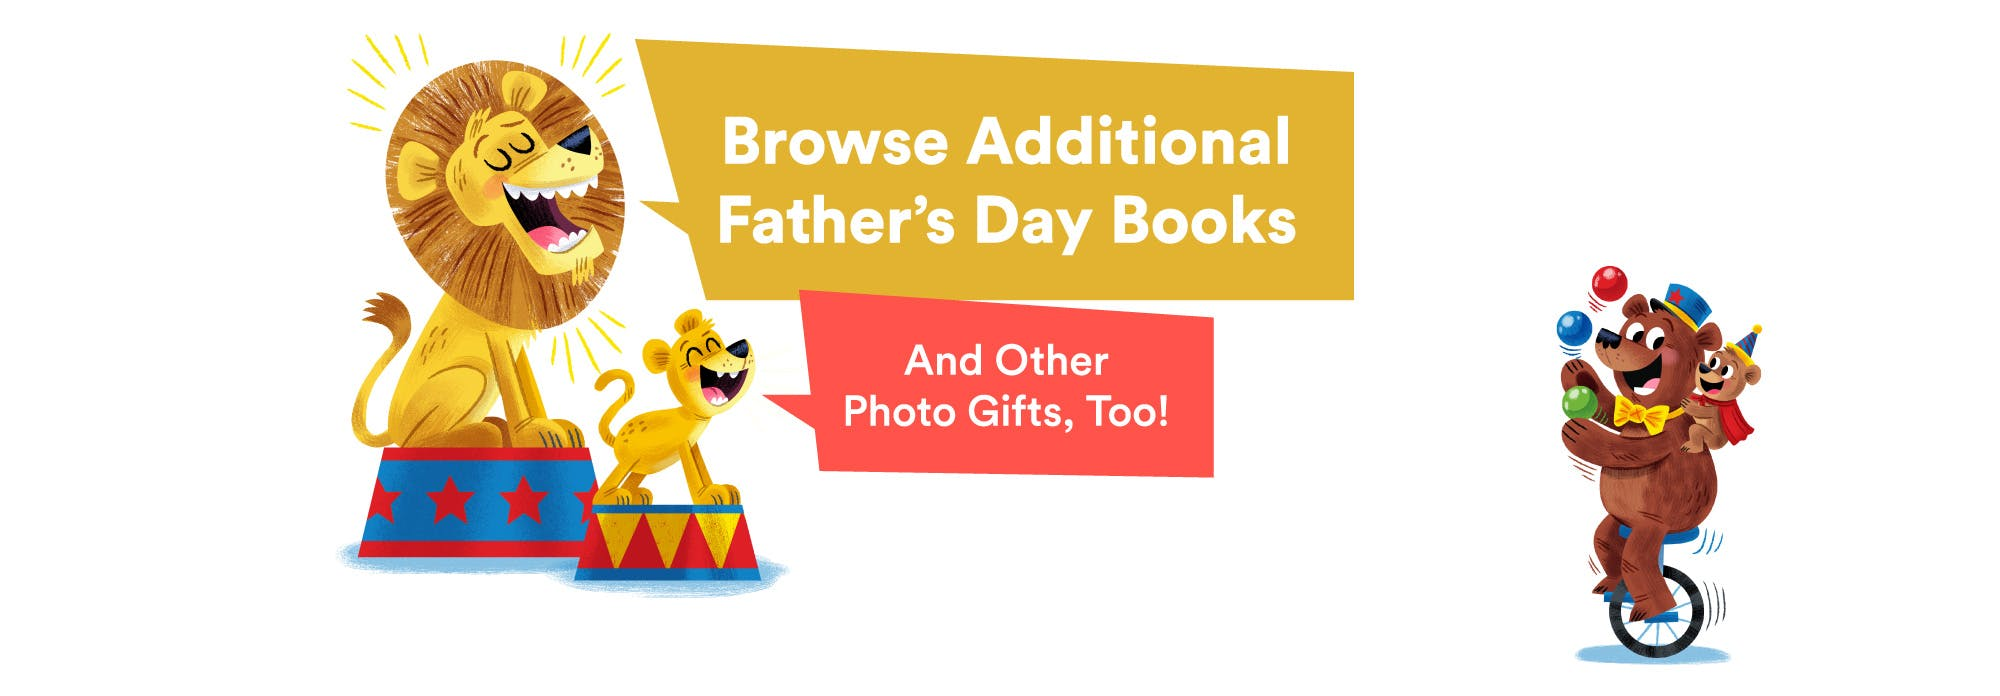 Browse additional Father's Day Photo Gifts